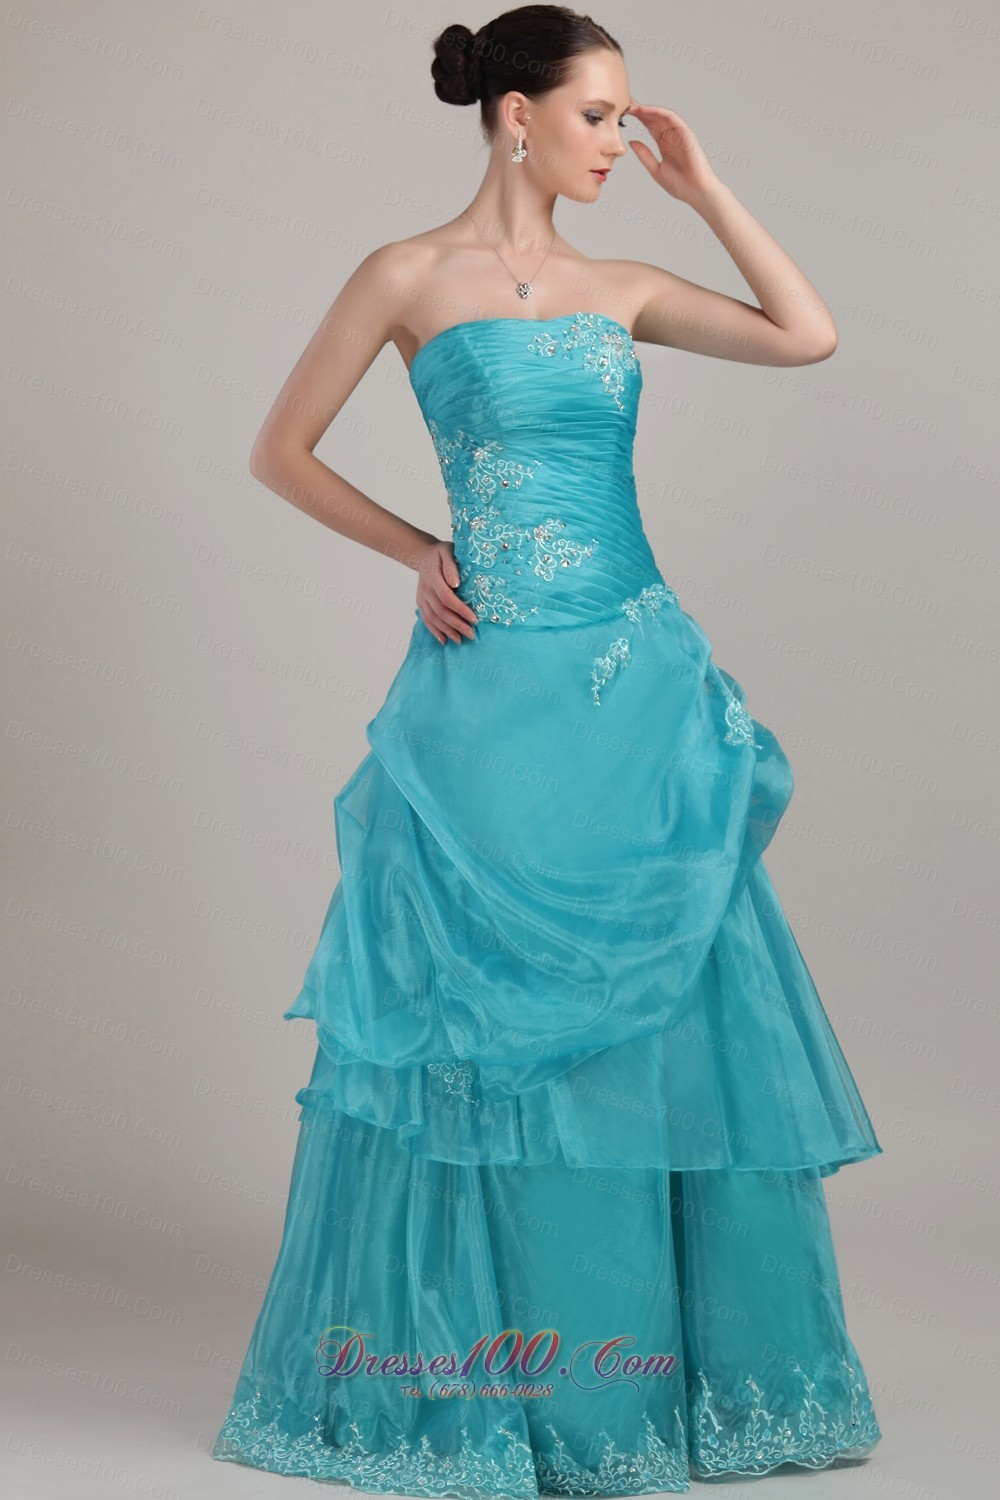 http://static.dresses1000.com/images/v/B3S54/plus-size-prom-dresses-union4t026-1.jpg